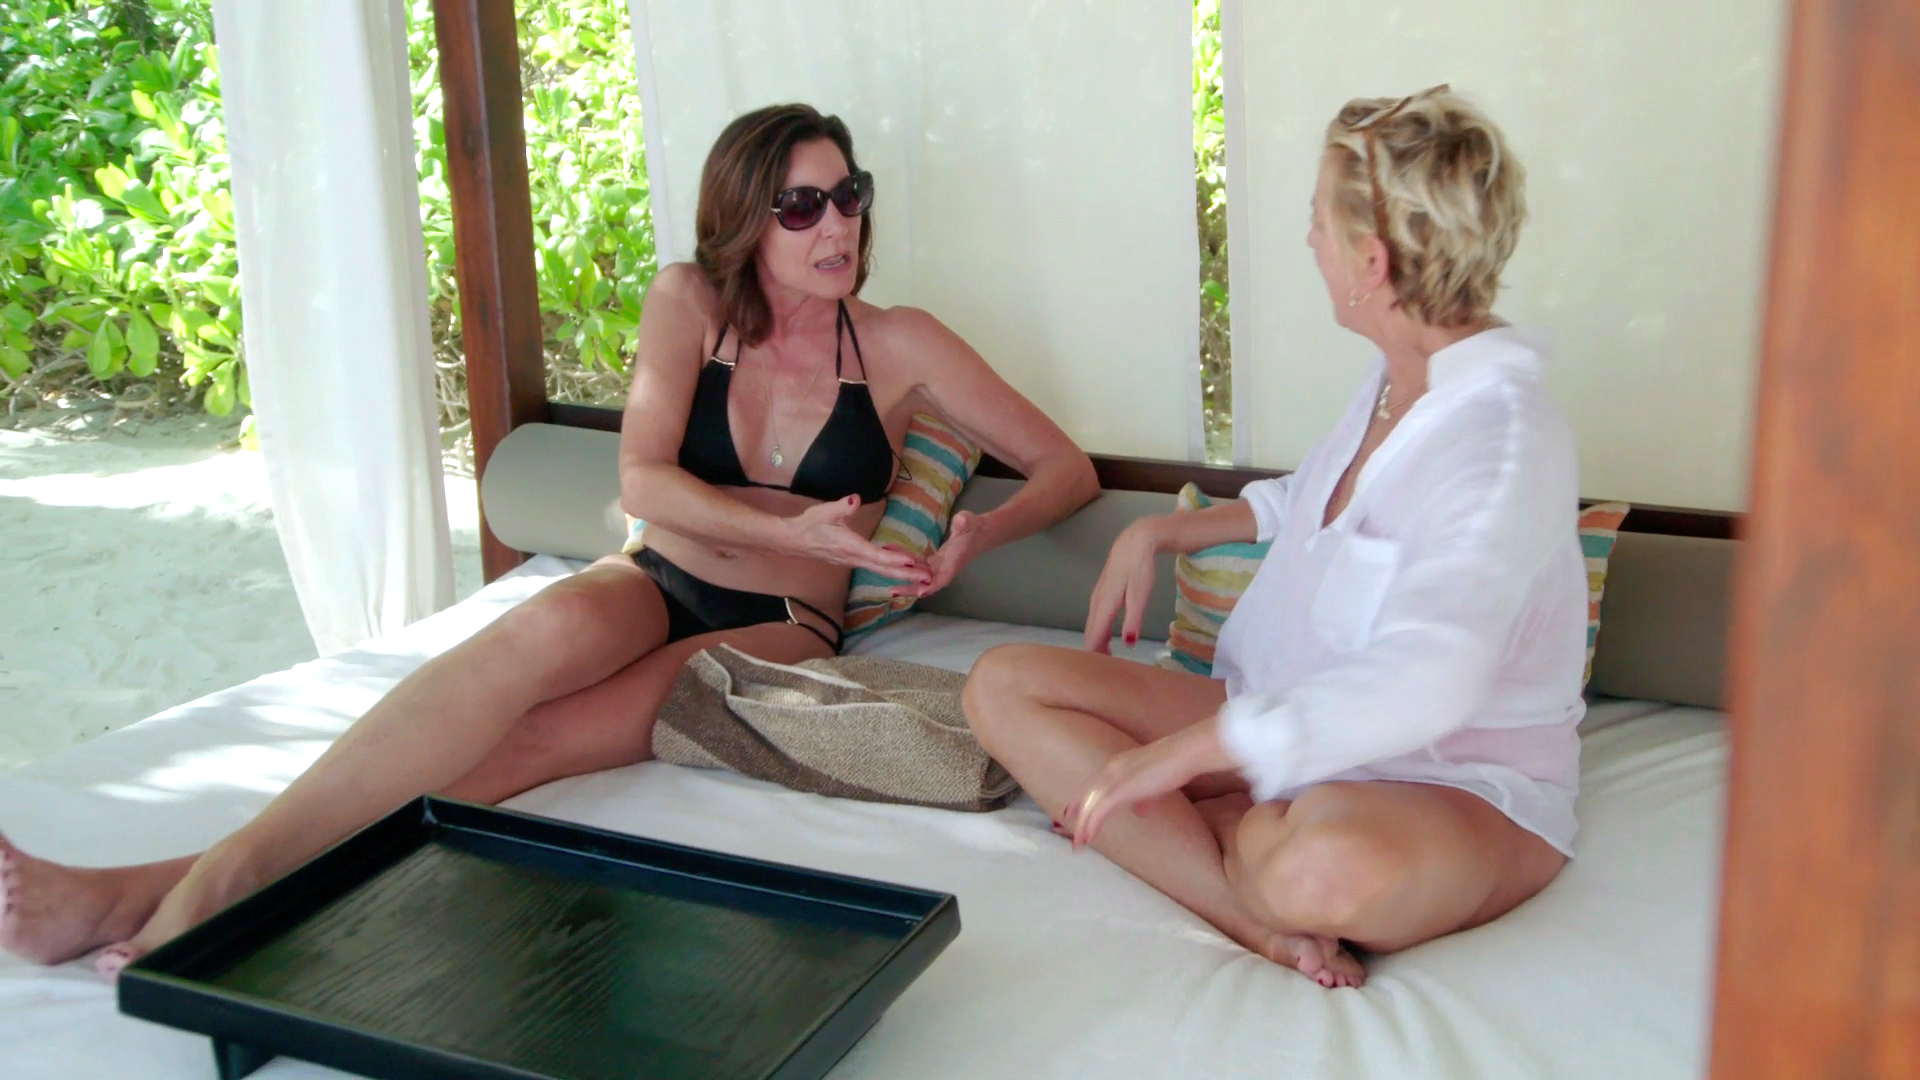 Luann de Lesseps Tries to Get an Apology Out of Dorinda Medley